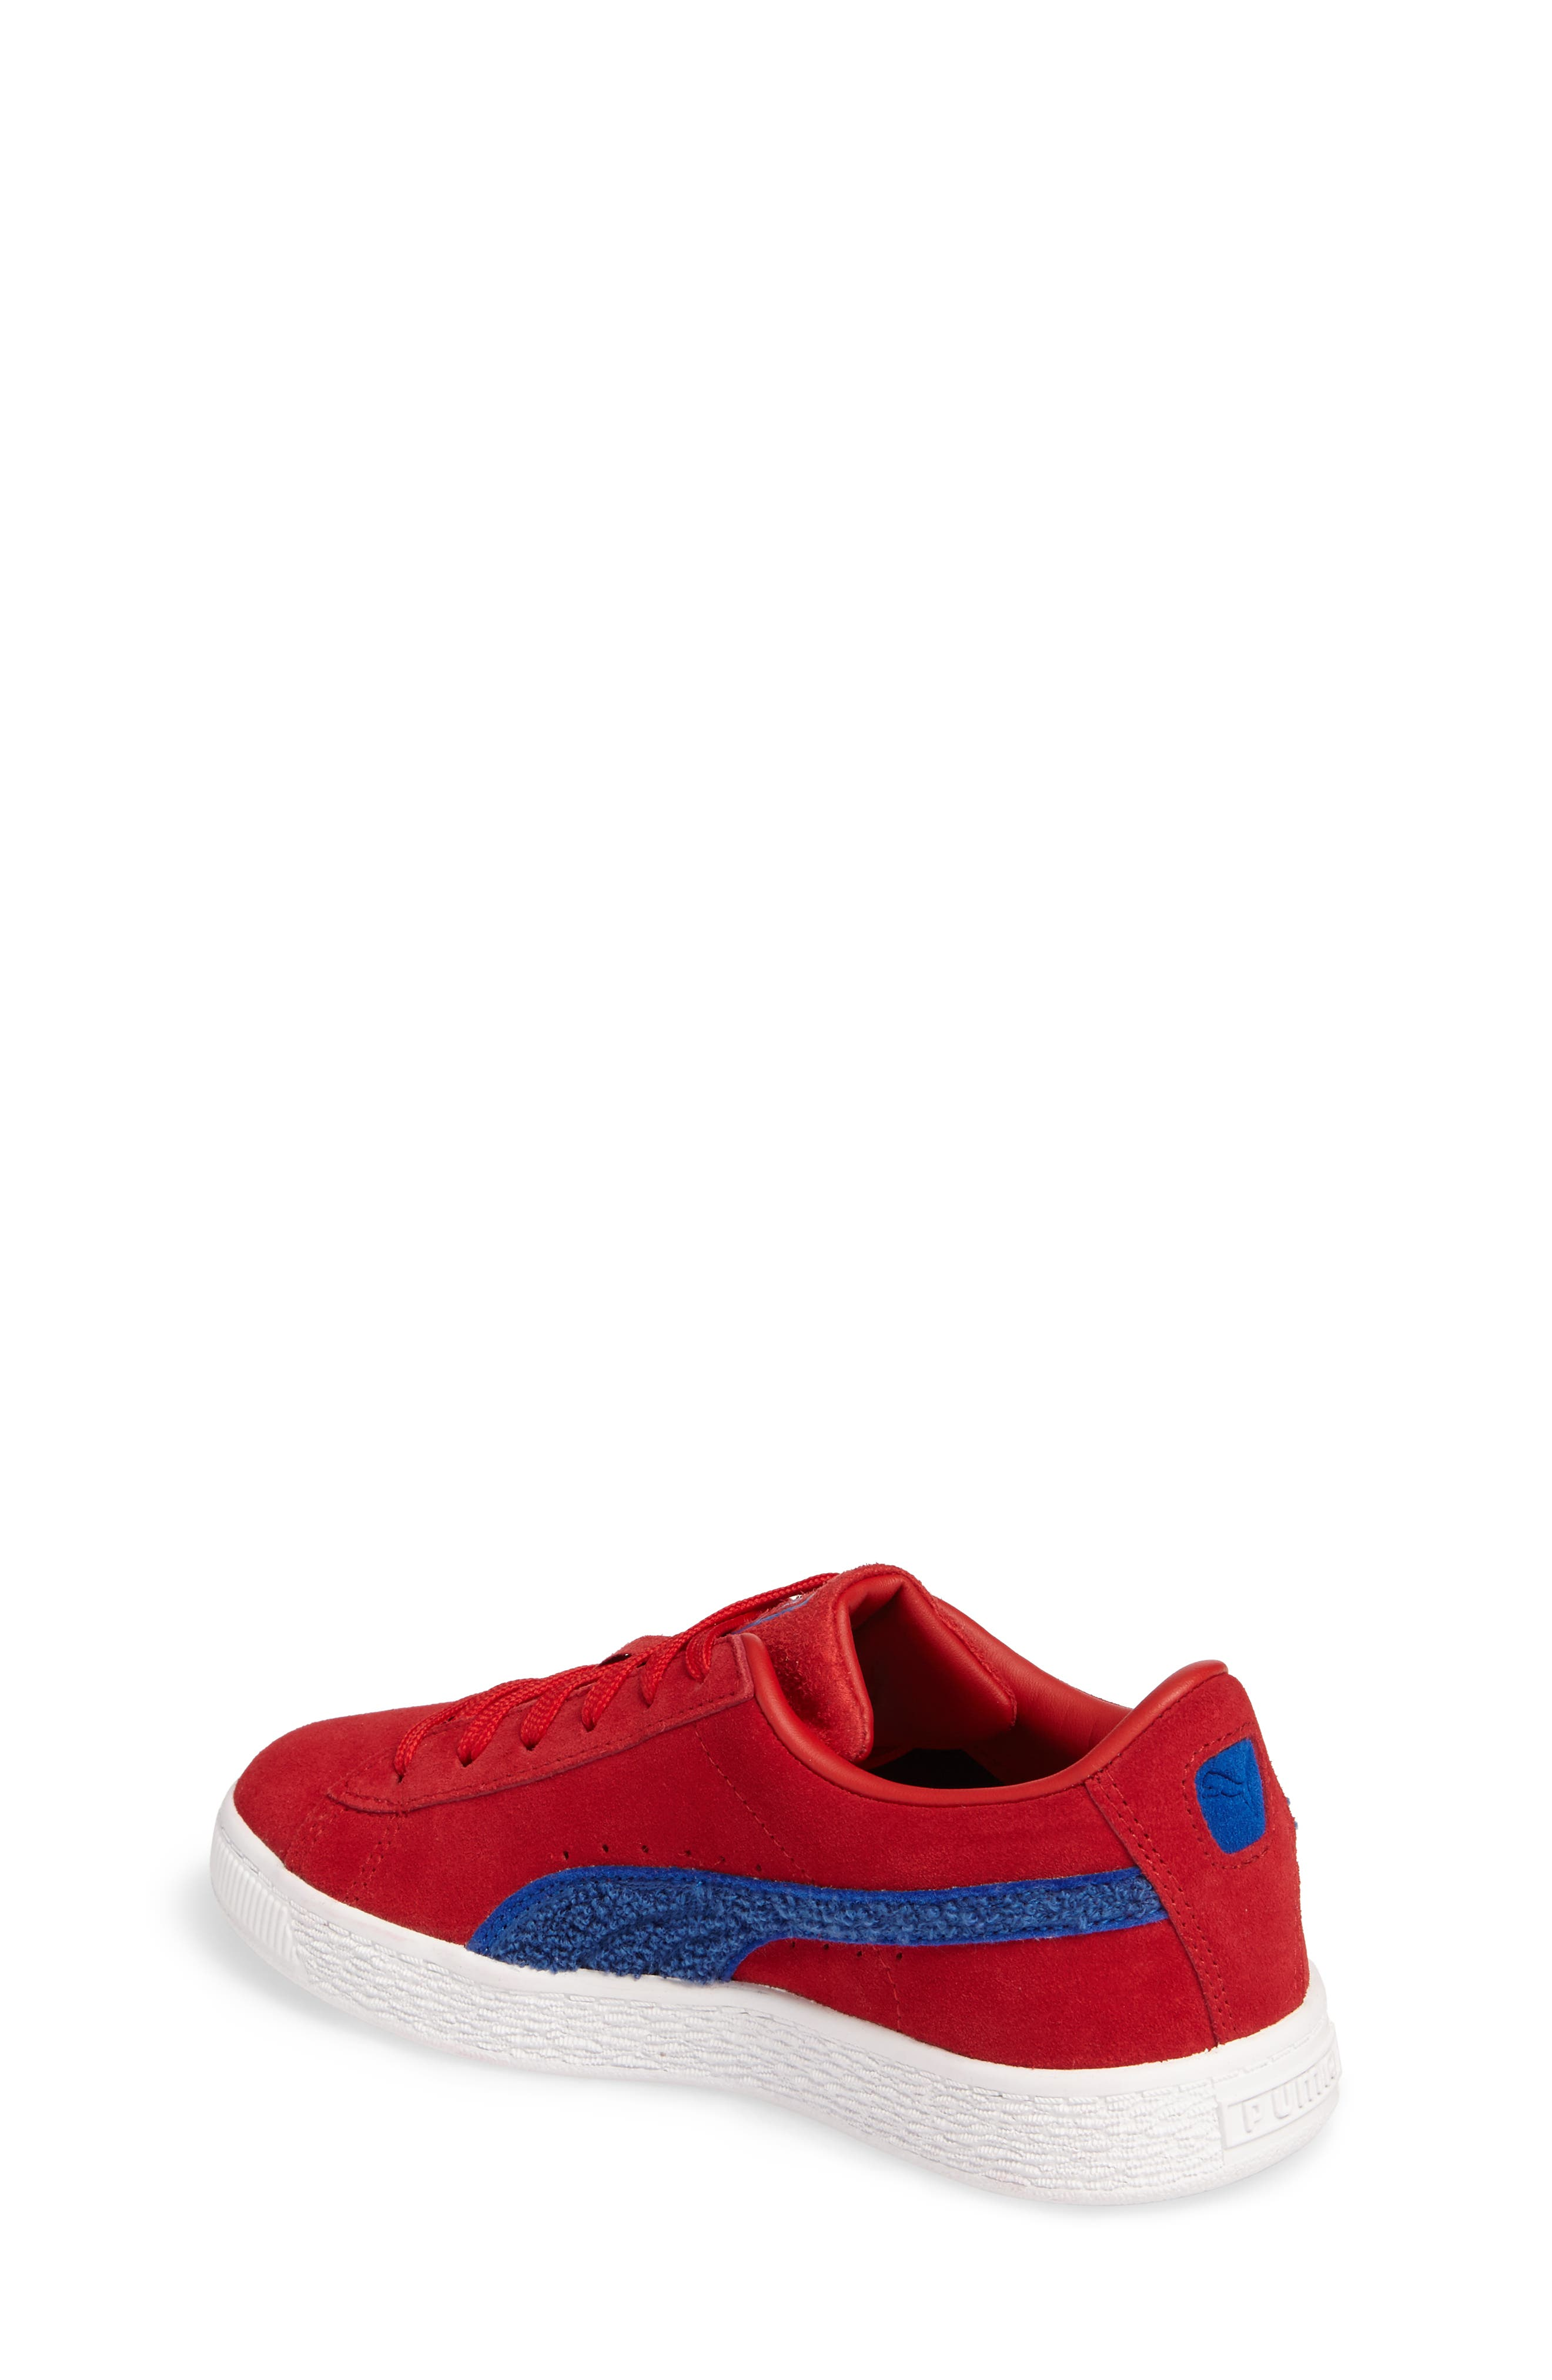 Classic Terry Sneaker,                             Alternate thumbnail 2, color,                             600